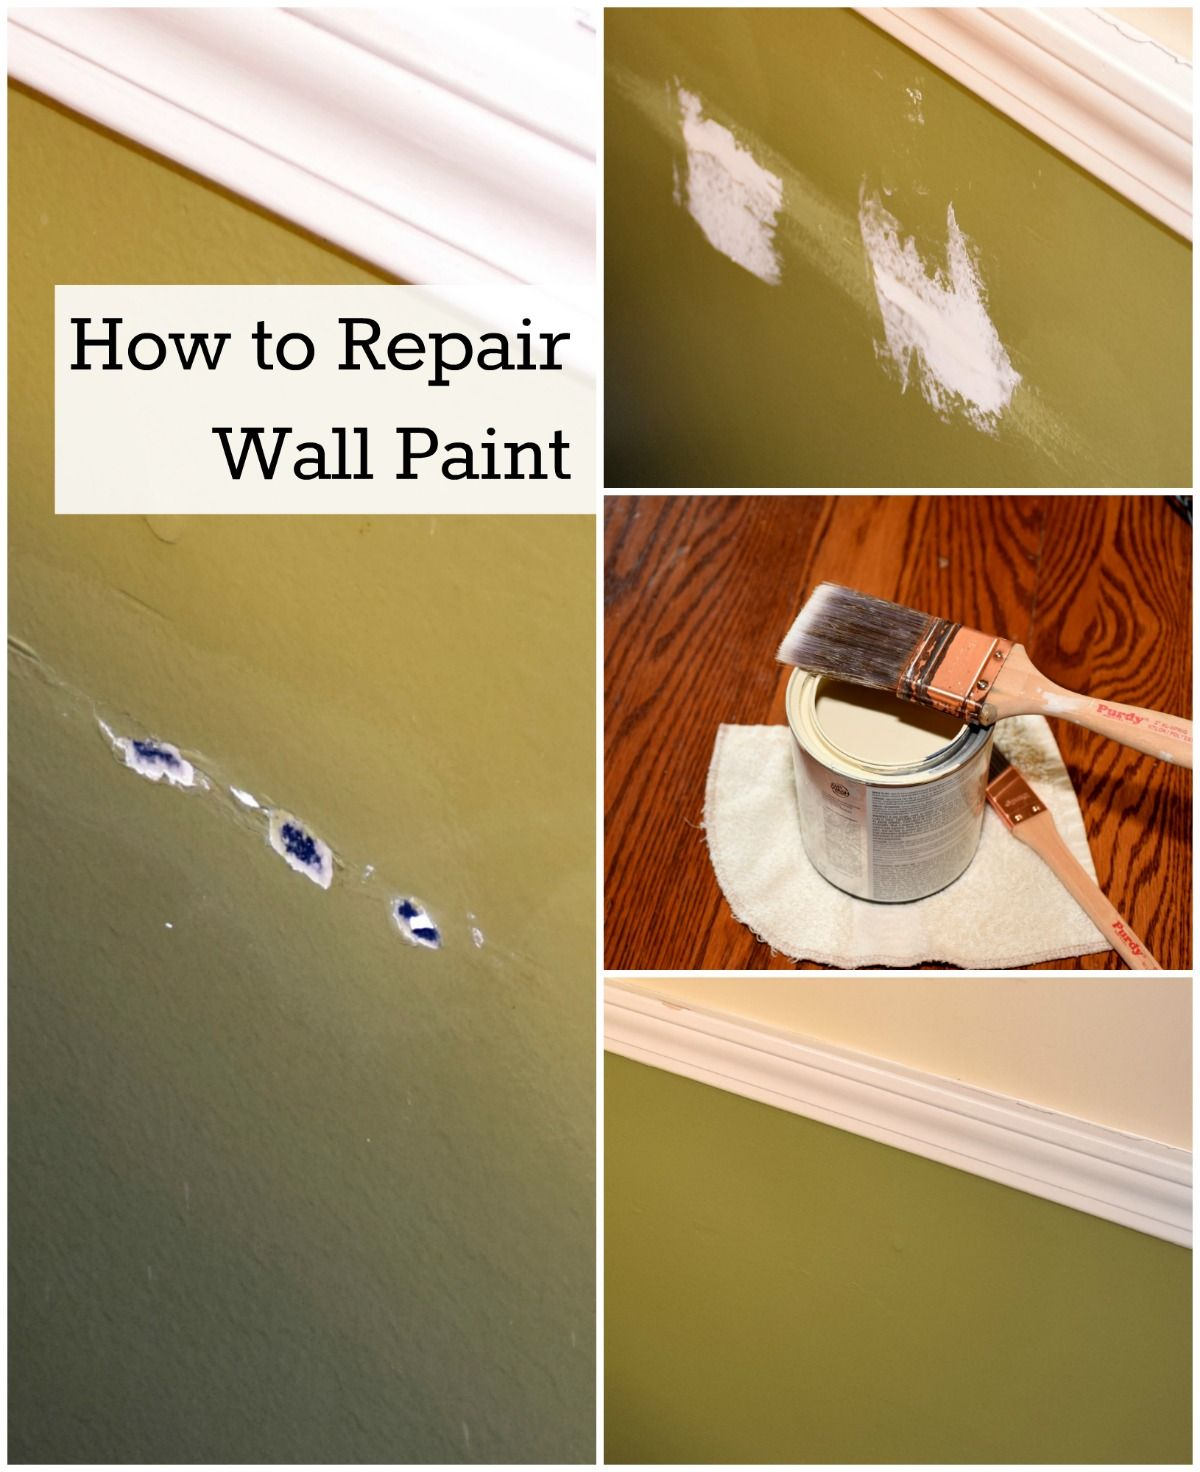 How To Touch Up Wall Paint Diy Wall Painting Wall Painting Paint Repair